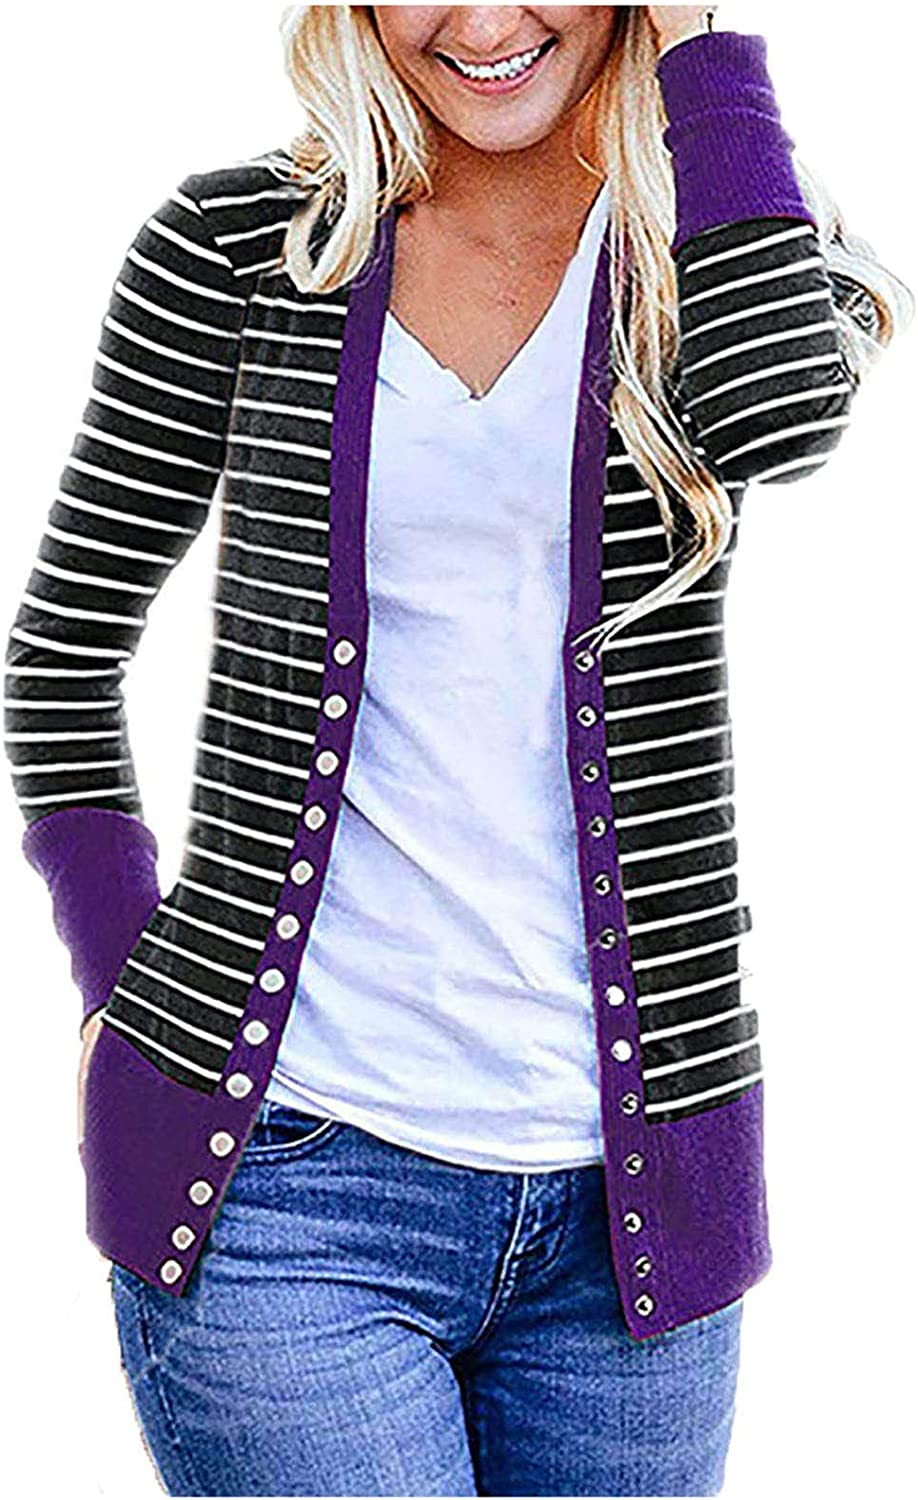 Kanzd Cardigans for Women Fashion Women's Long Sleeve Snap Button Down Stripe Knit Ribbed Neckline Cardigans Sweaters